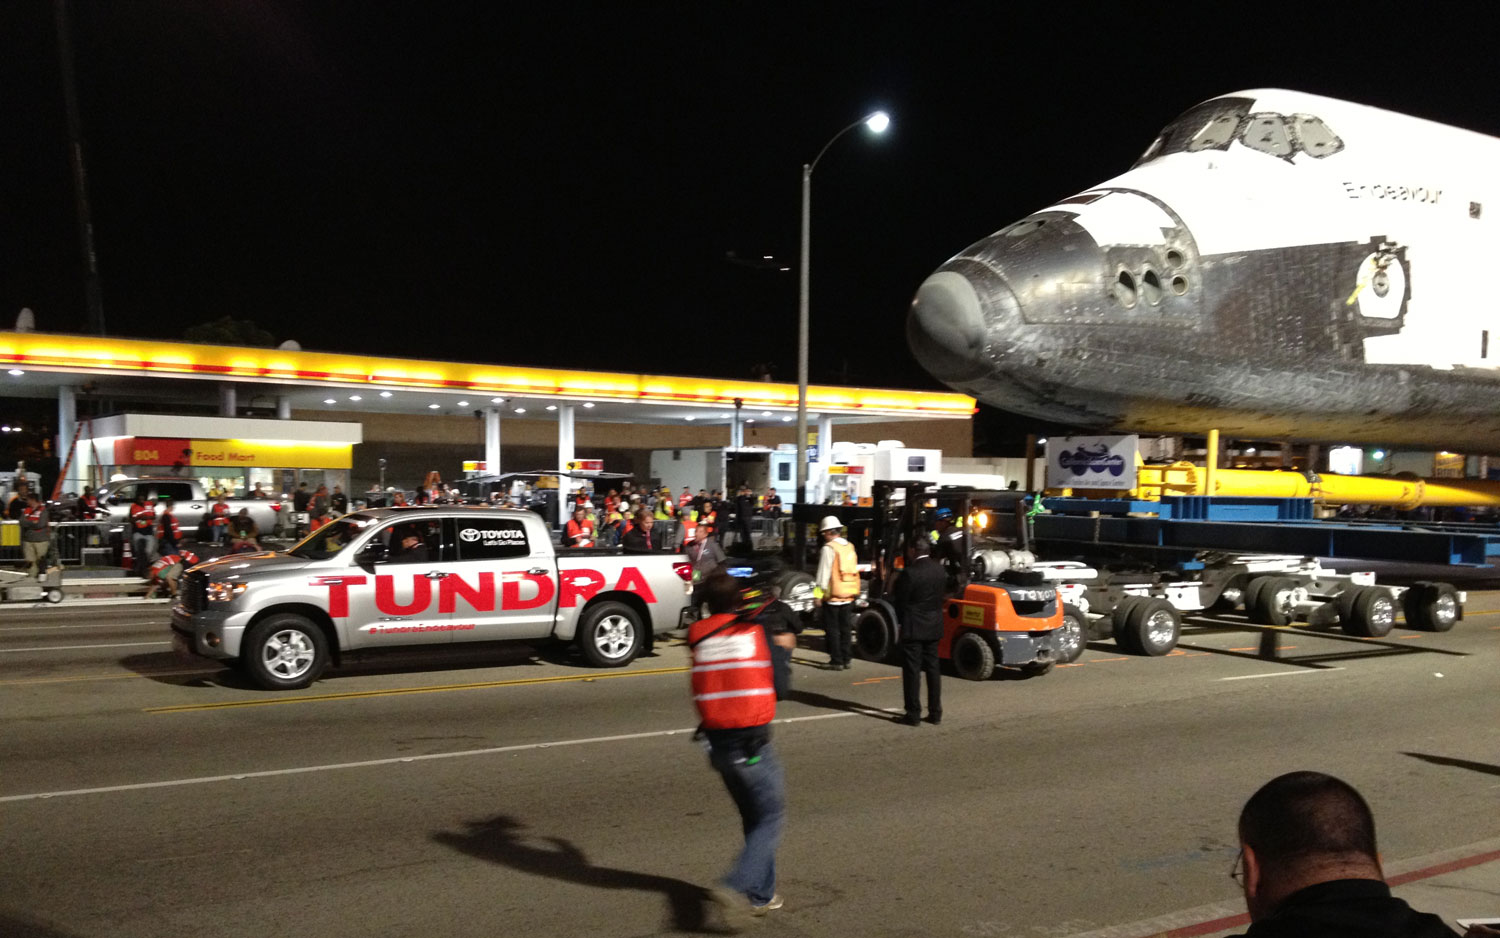 space shuttle toyota tundra - photo #4